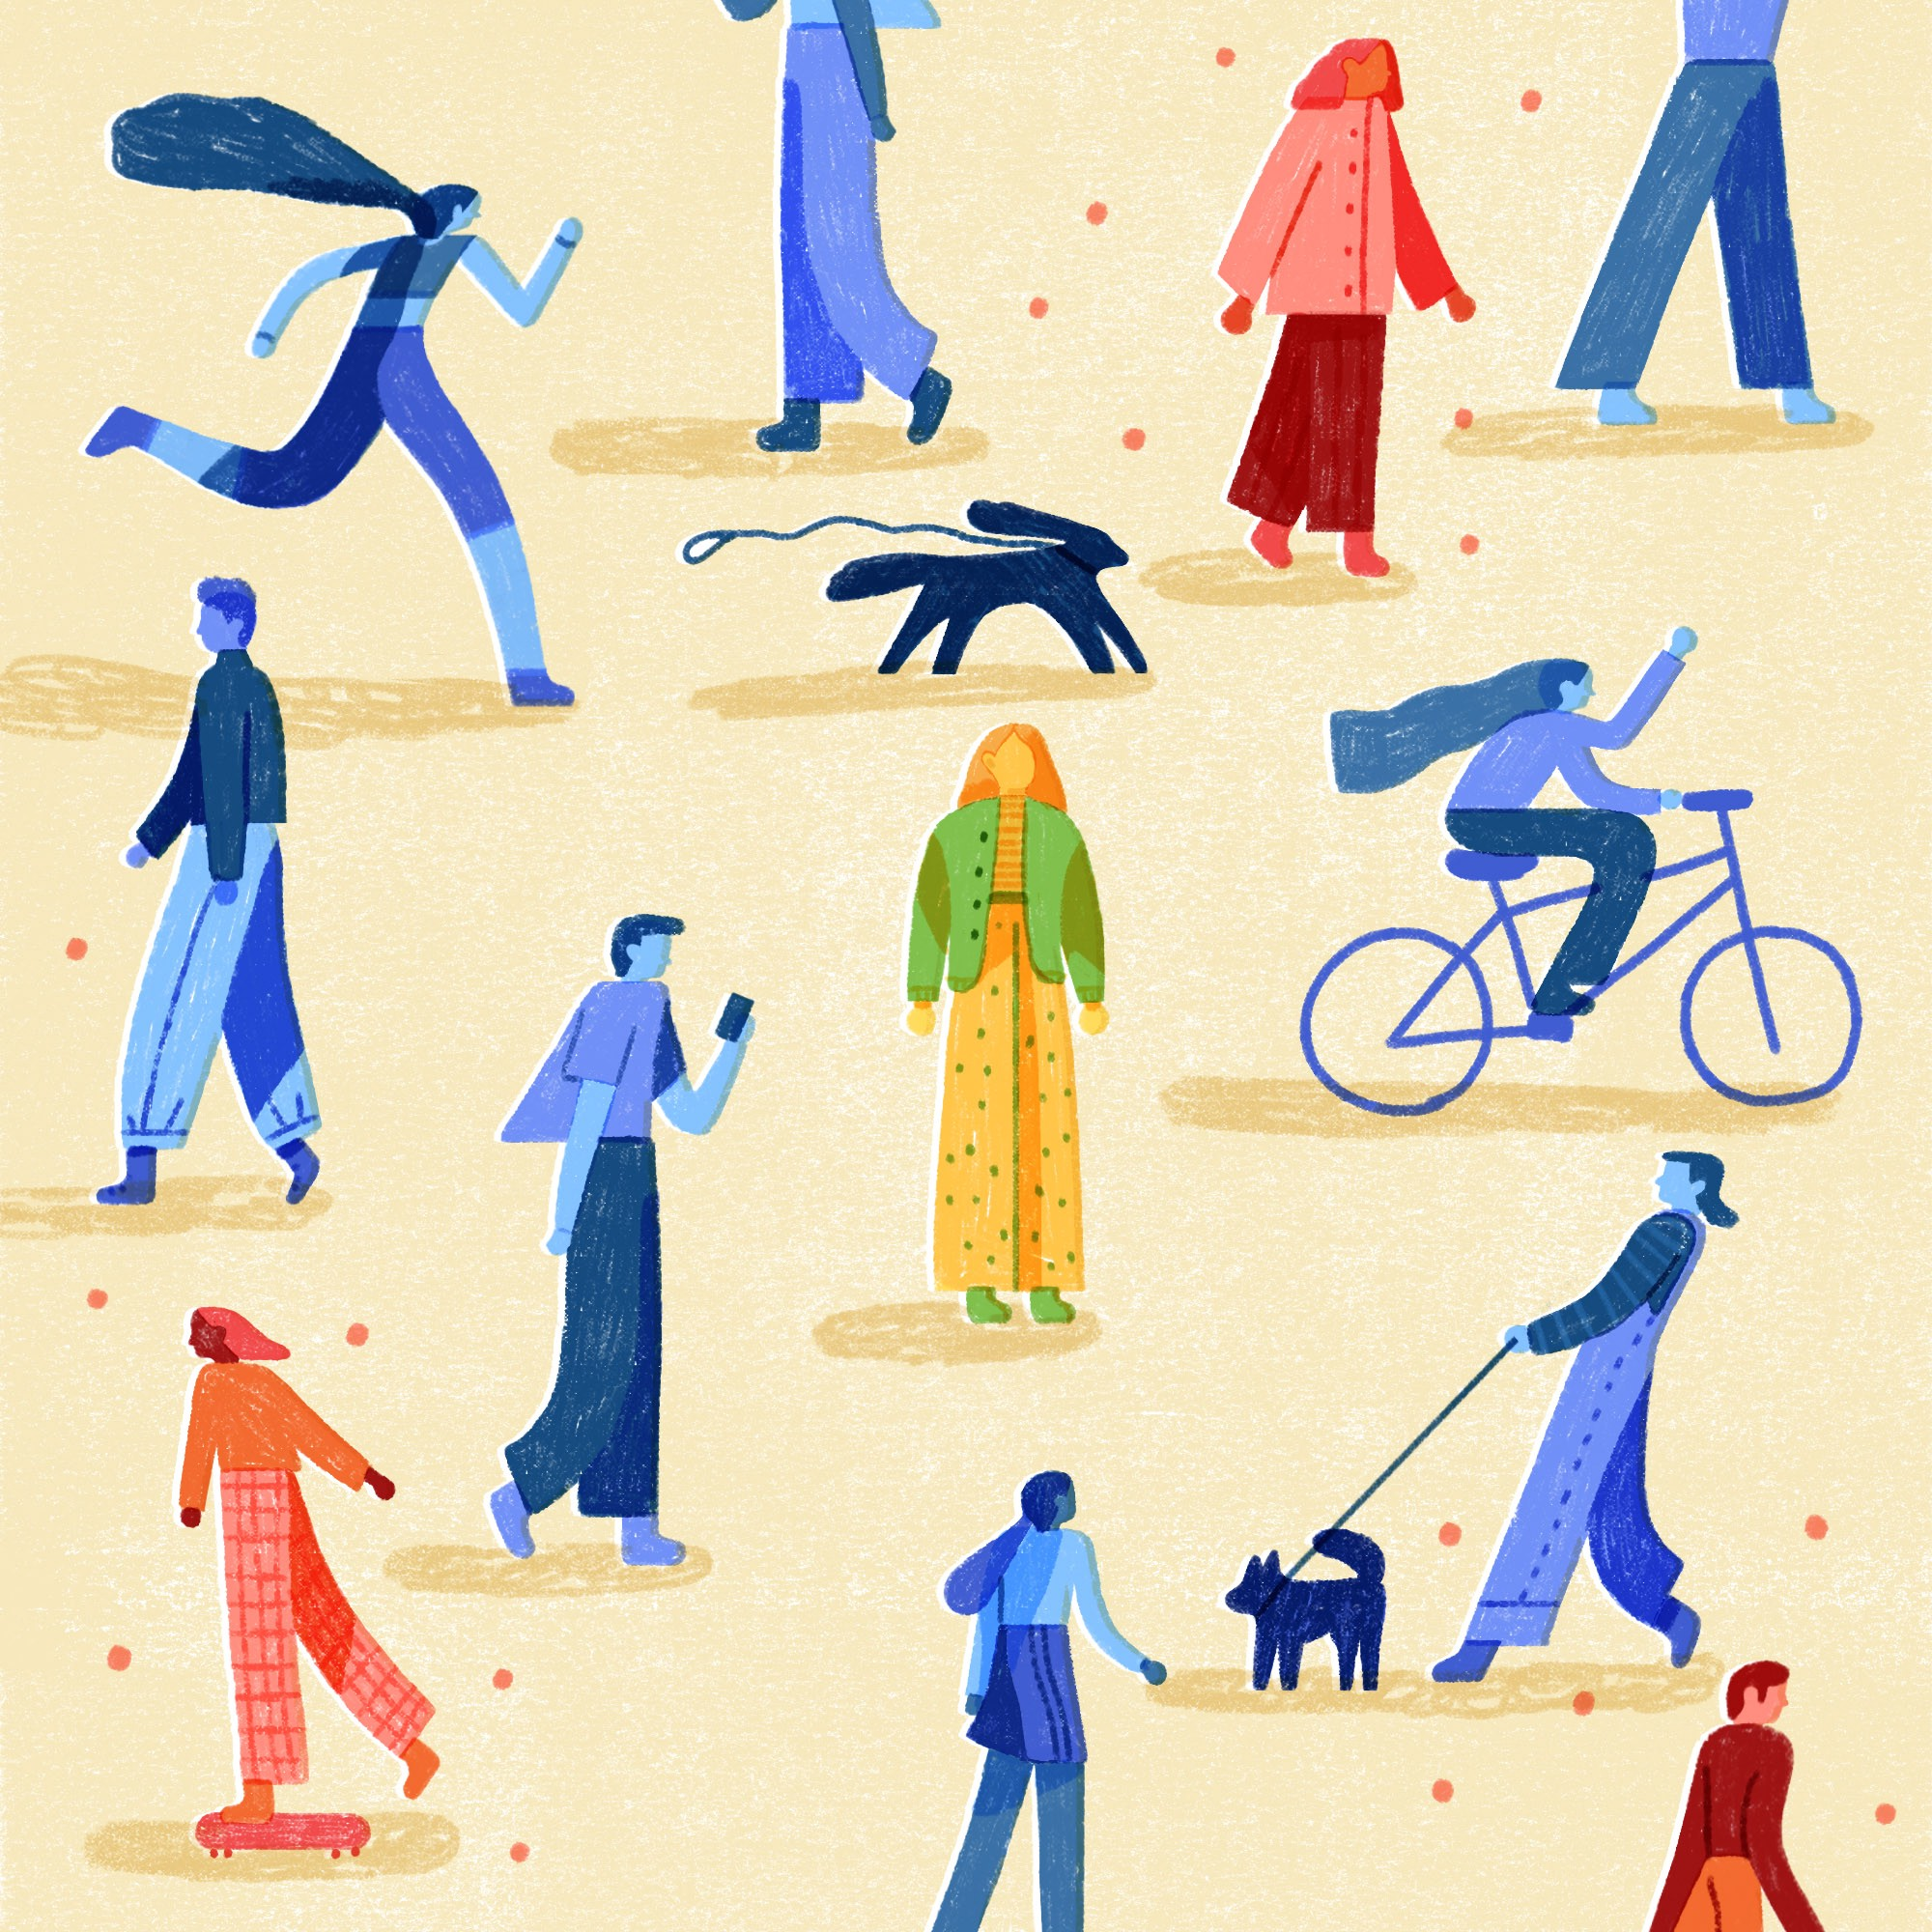 Colorful illustration of people outside in public.